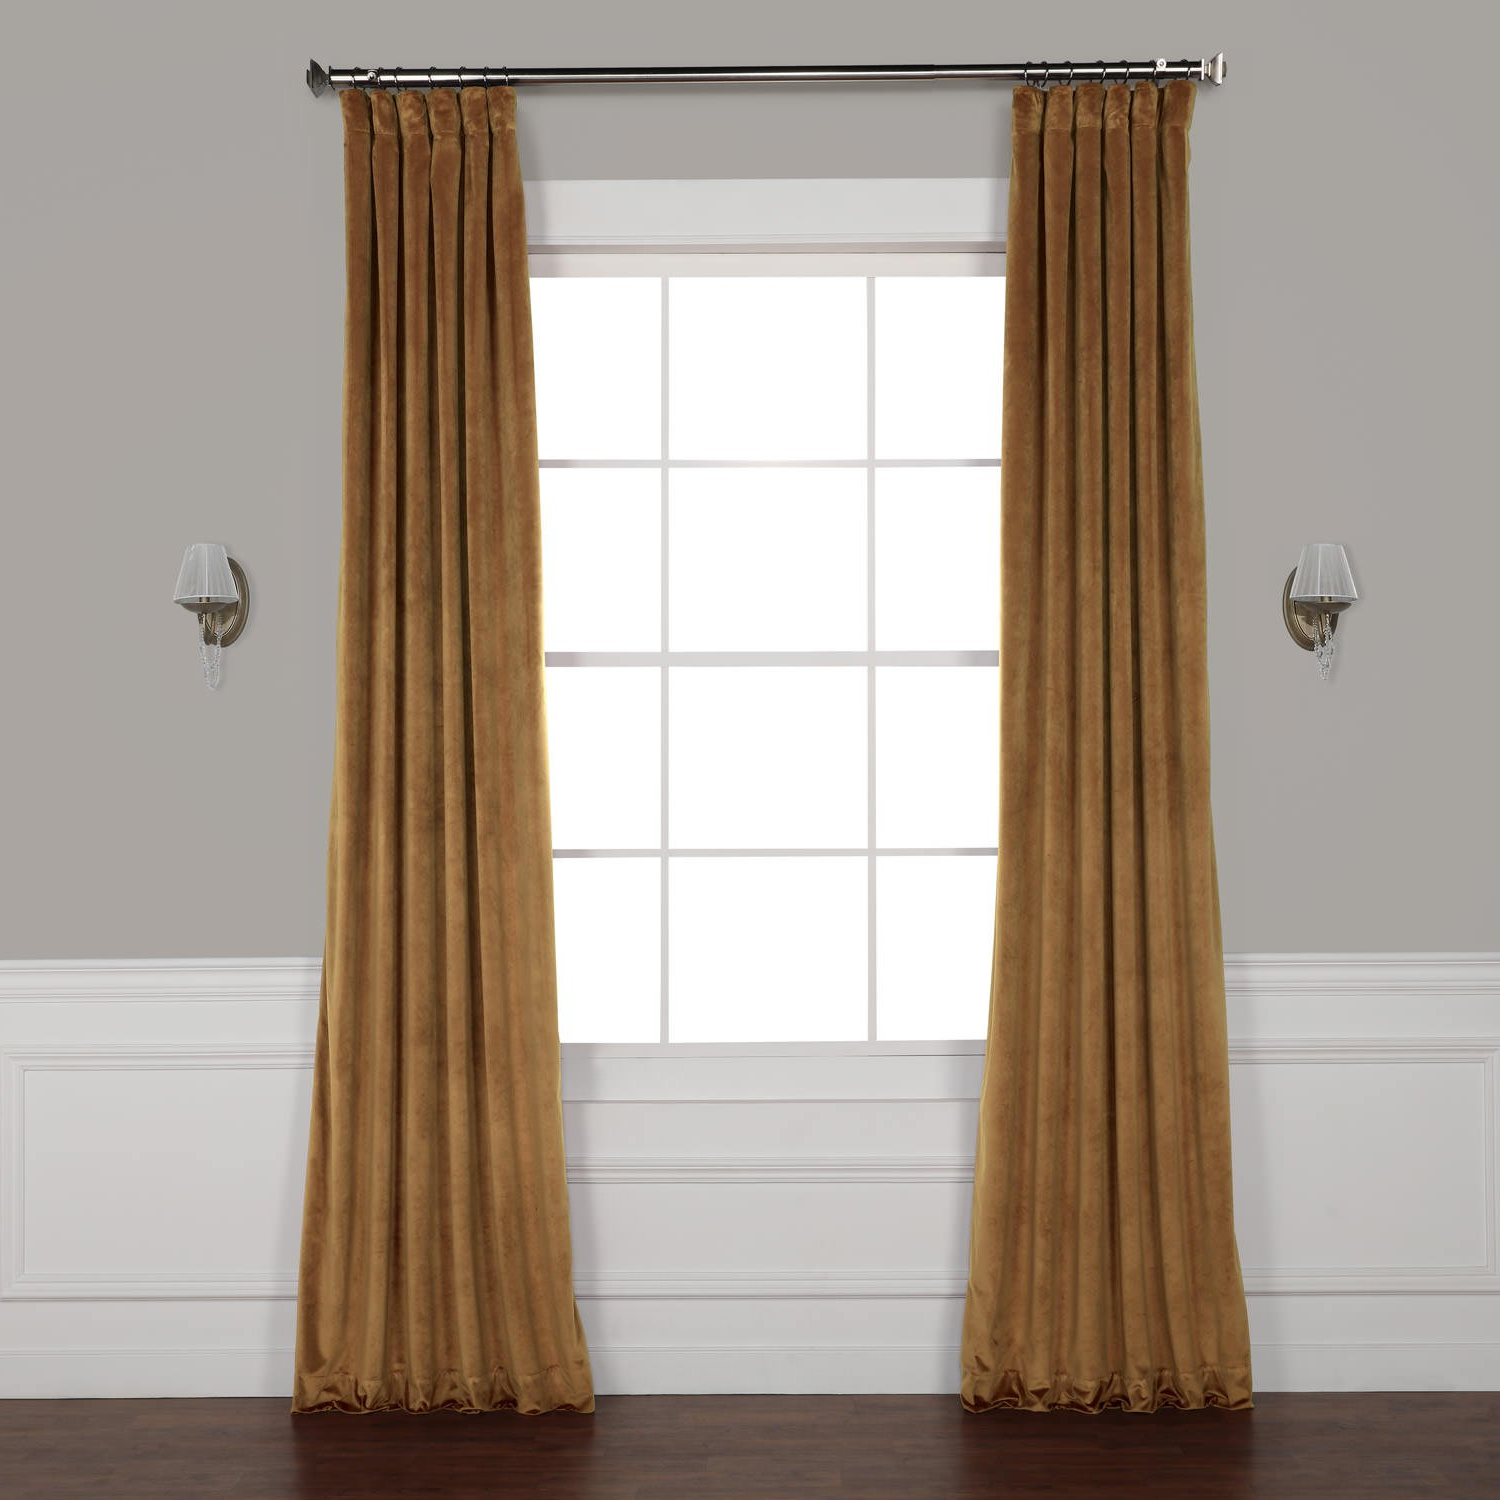 Preferred Half Price Drapes Vpyc 161232 96 Heritage Plush Velvet Curtain, 50 X 96,  Spiced Rum With Heritage Plush Velvet Curtains (View 16 of 20)